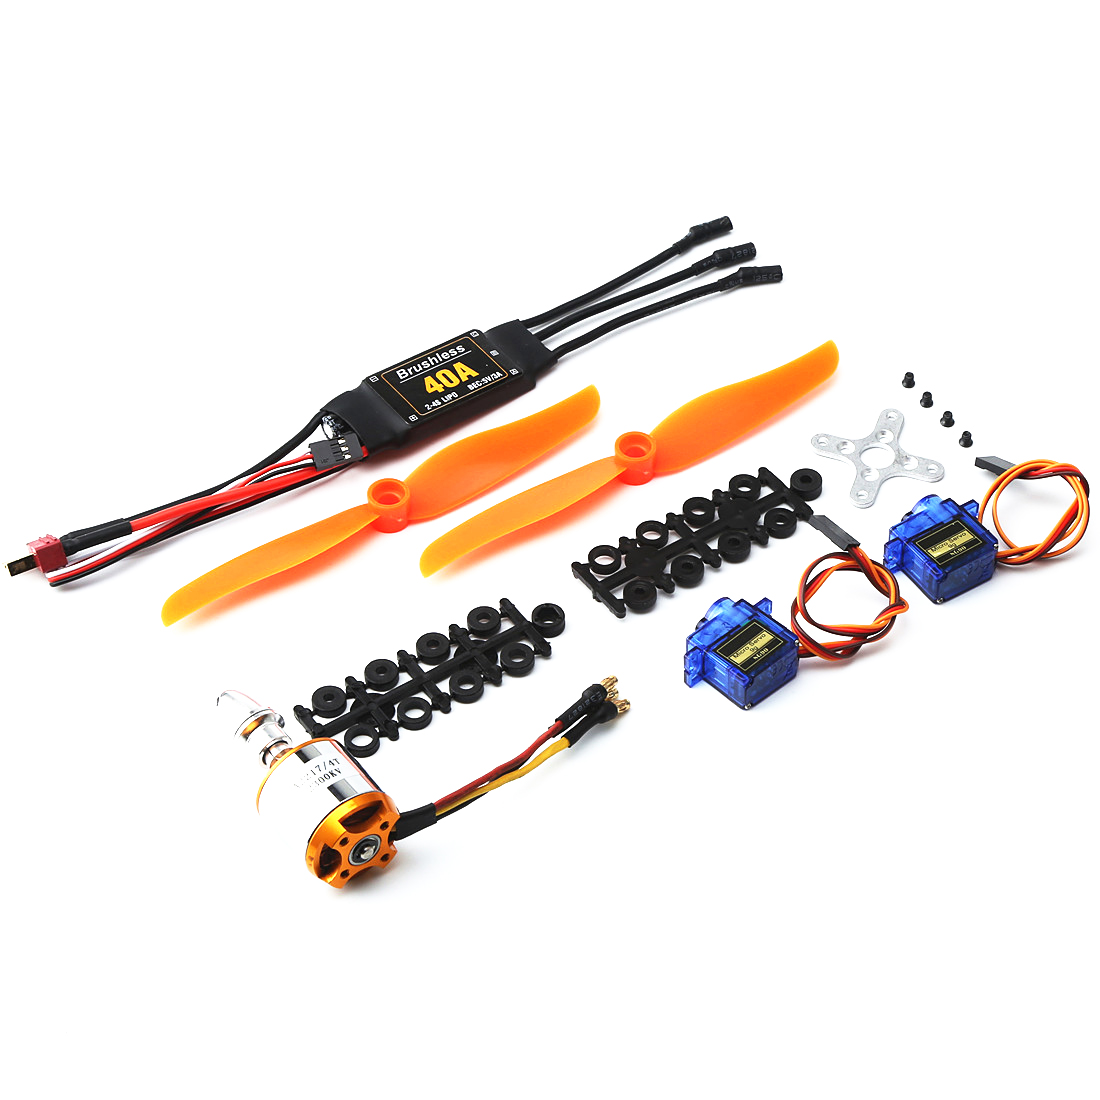 2217 KV2300 motor+<font><b>6035</b></font> <font><b>propeller</b></font>+9g servo+40A ESC kit for XXD RC Airplane Racing Drone image